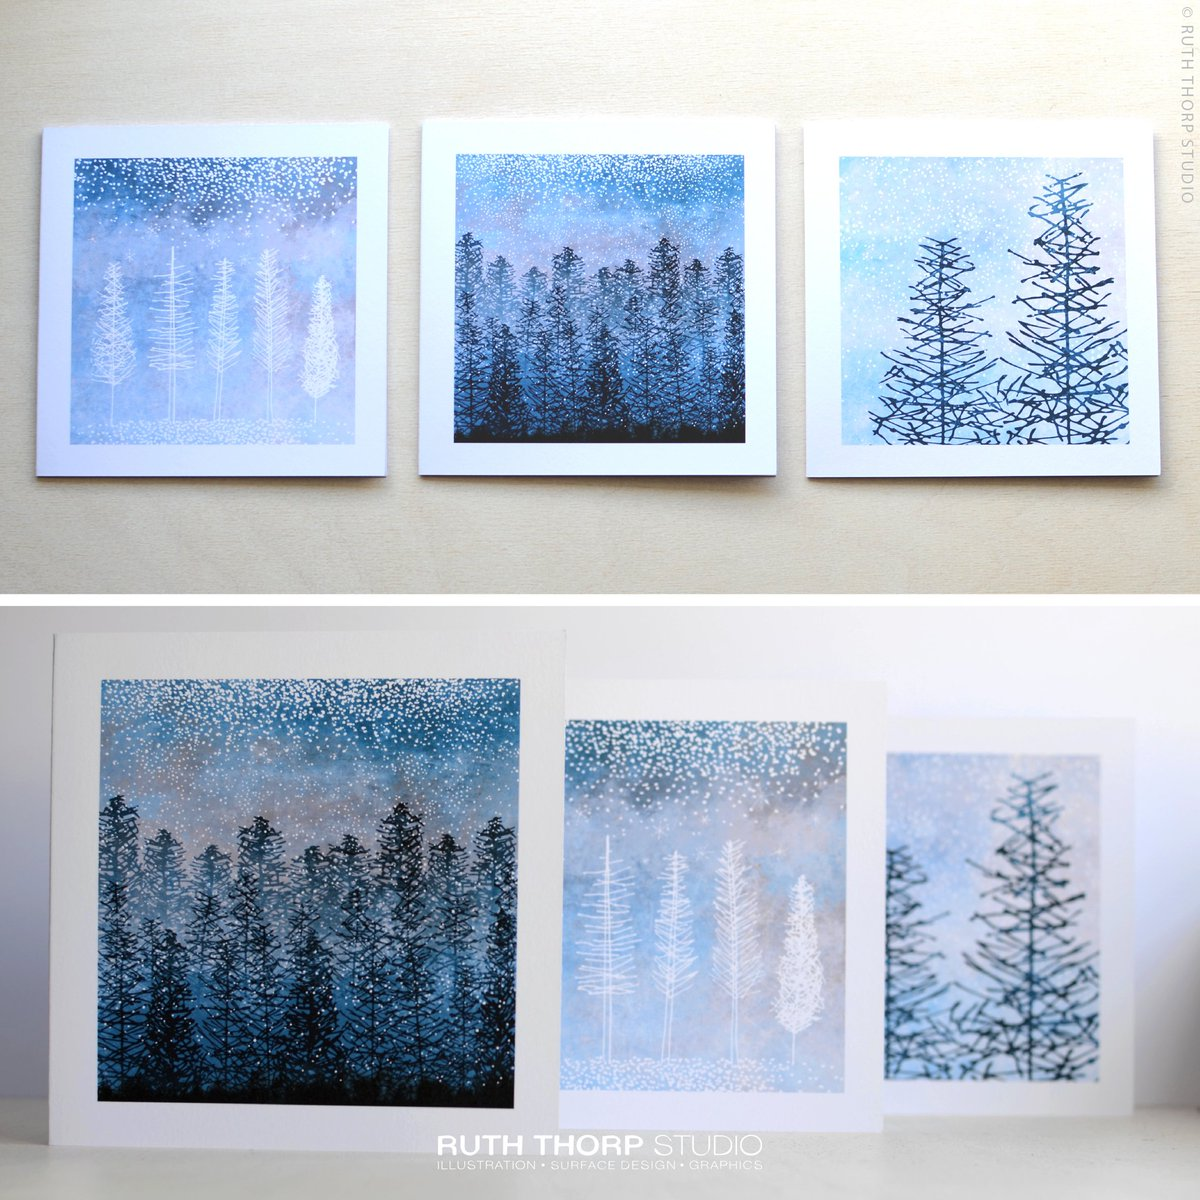 ...and you can also buy them as cards too! #CraftHour #ChristmasInJuly  http:// etsy.me/2tzrJyf  &nbsp;   #wintertrees #cards #justacard #handmade #art<br>http://pic.twitter.com/yydUv4wV6f